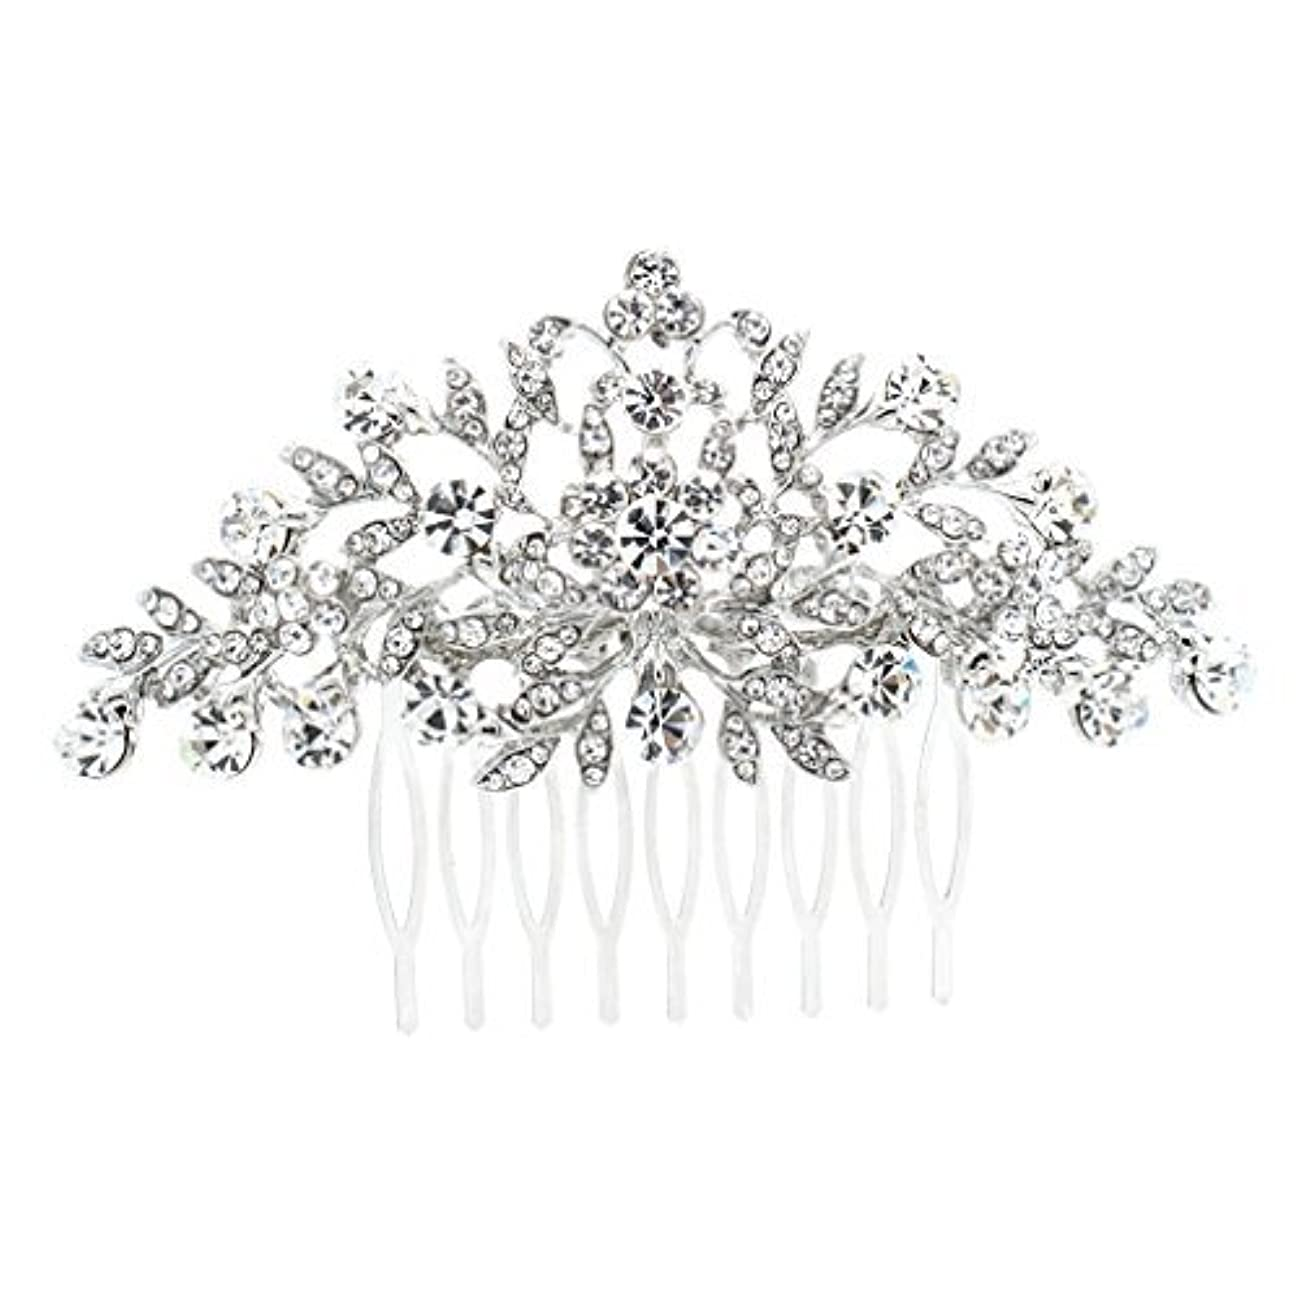 ファックスモネシリーズSEPBRDIALS Rhinestone Crystal Hair Comb Pins Women Wedding Hair Jewelry Accessories FA2944 (Silver) [並行輸入品]